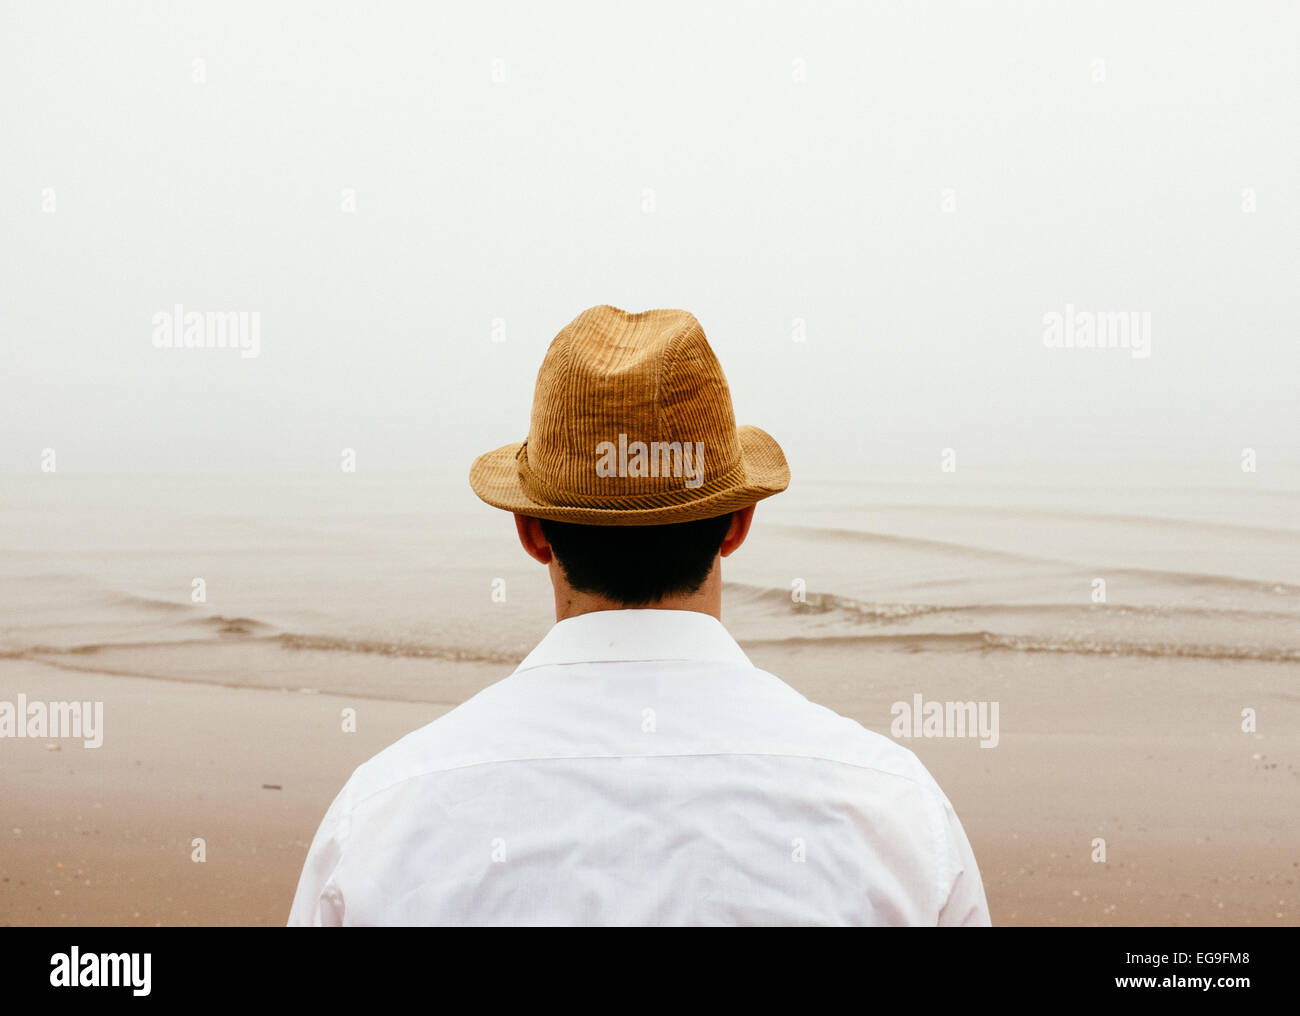 Man in straw hat on beach looking at view - Stock Image